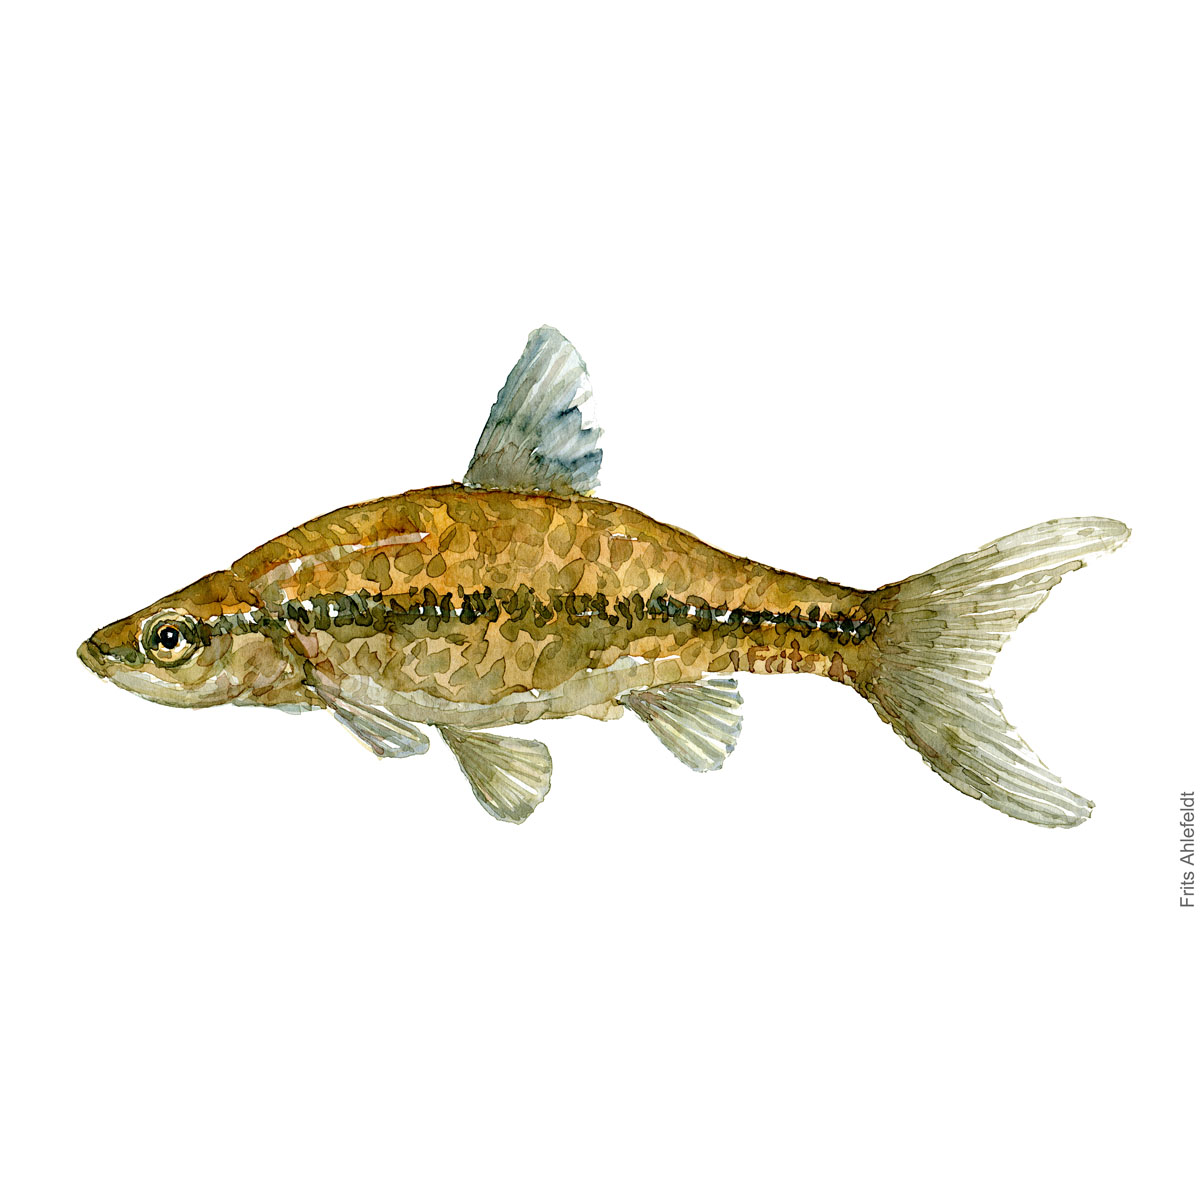 Stone moroko - Båndgrundling Fish watercolor illustration by frits Ahlefeldt